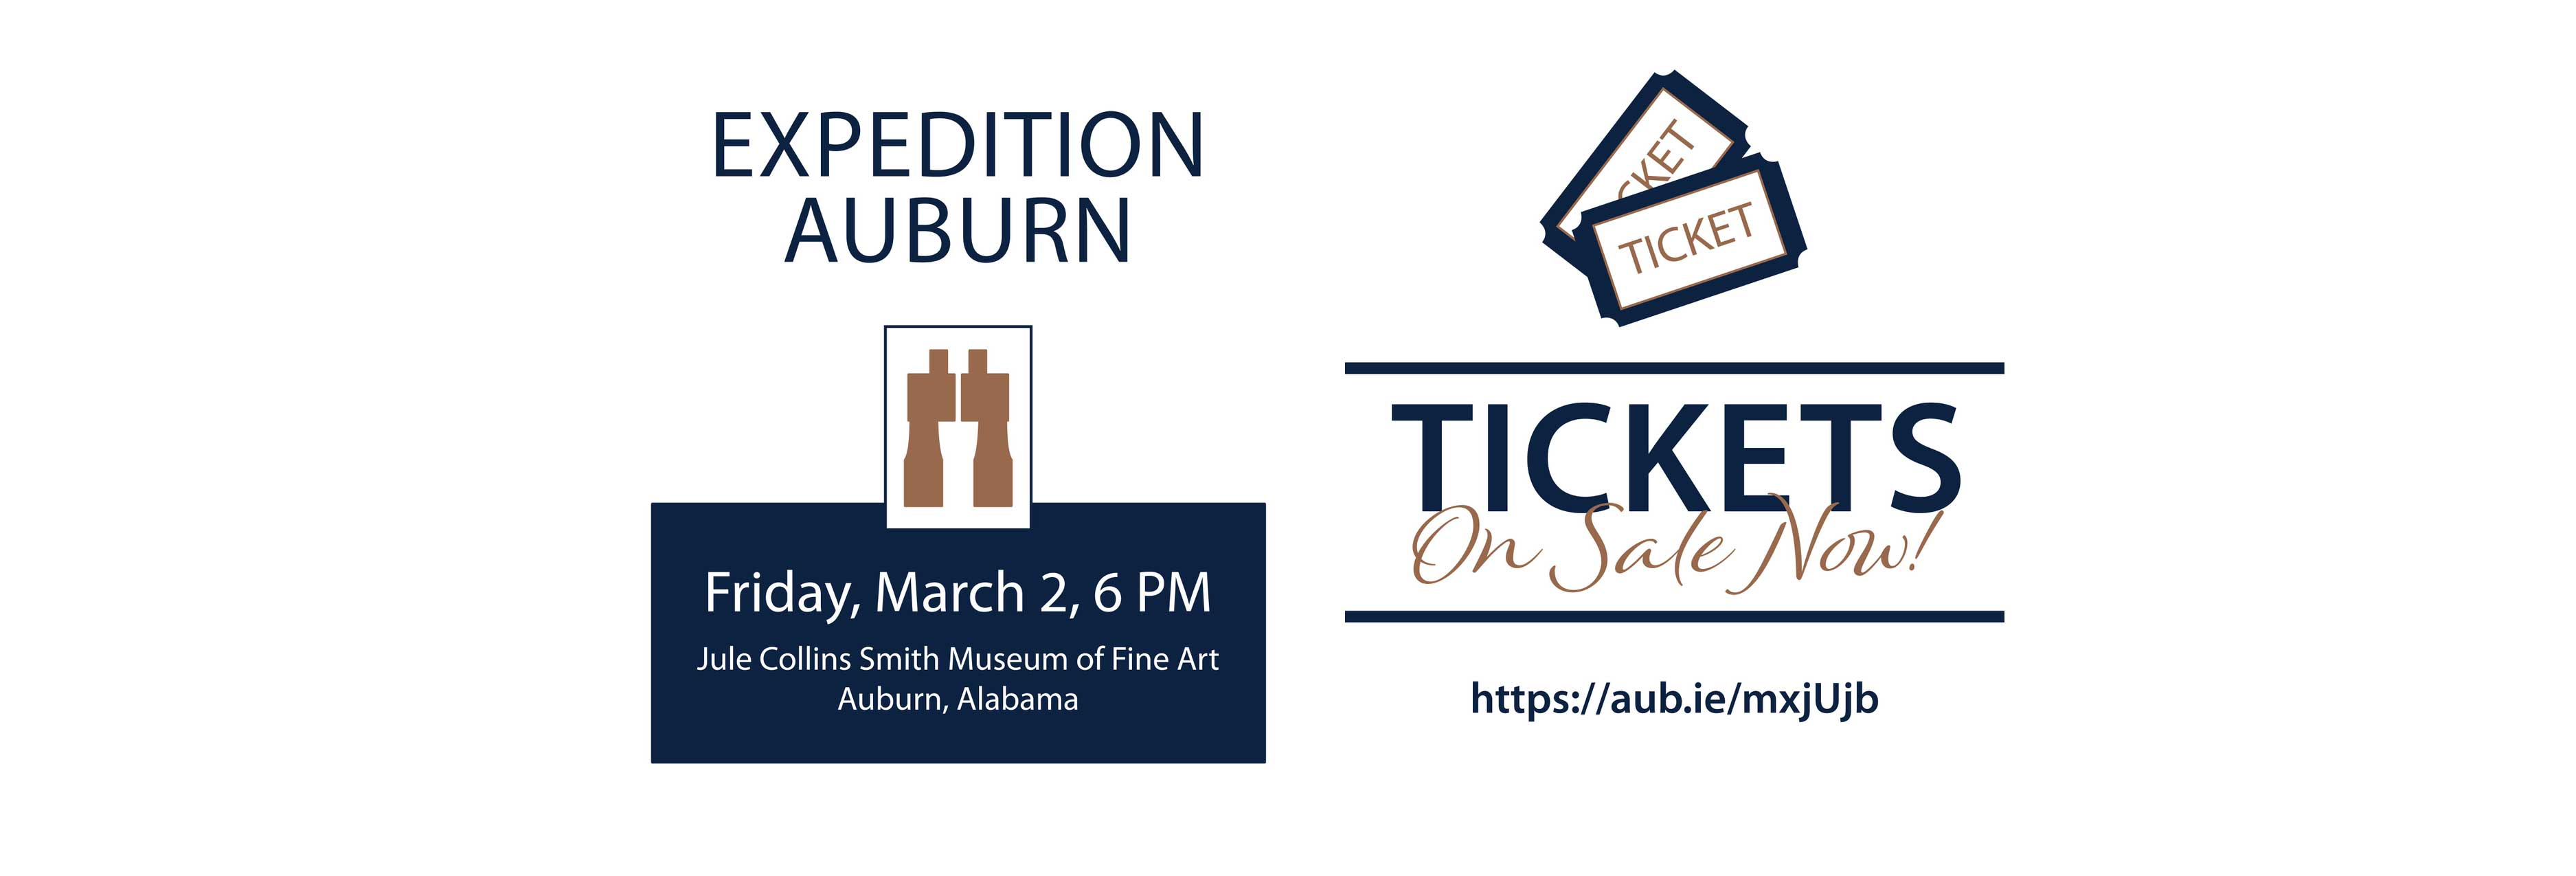 Details for Expedition Auburn: Friday, March 2 6 pm. Tickets are on sale now.